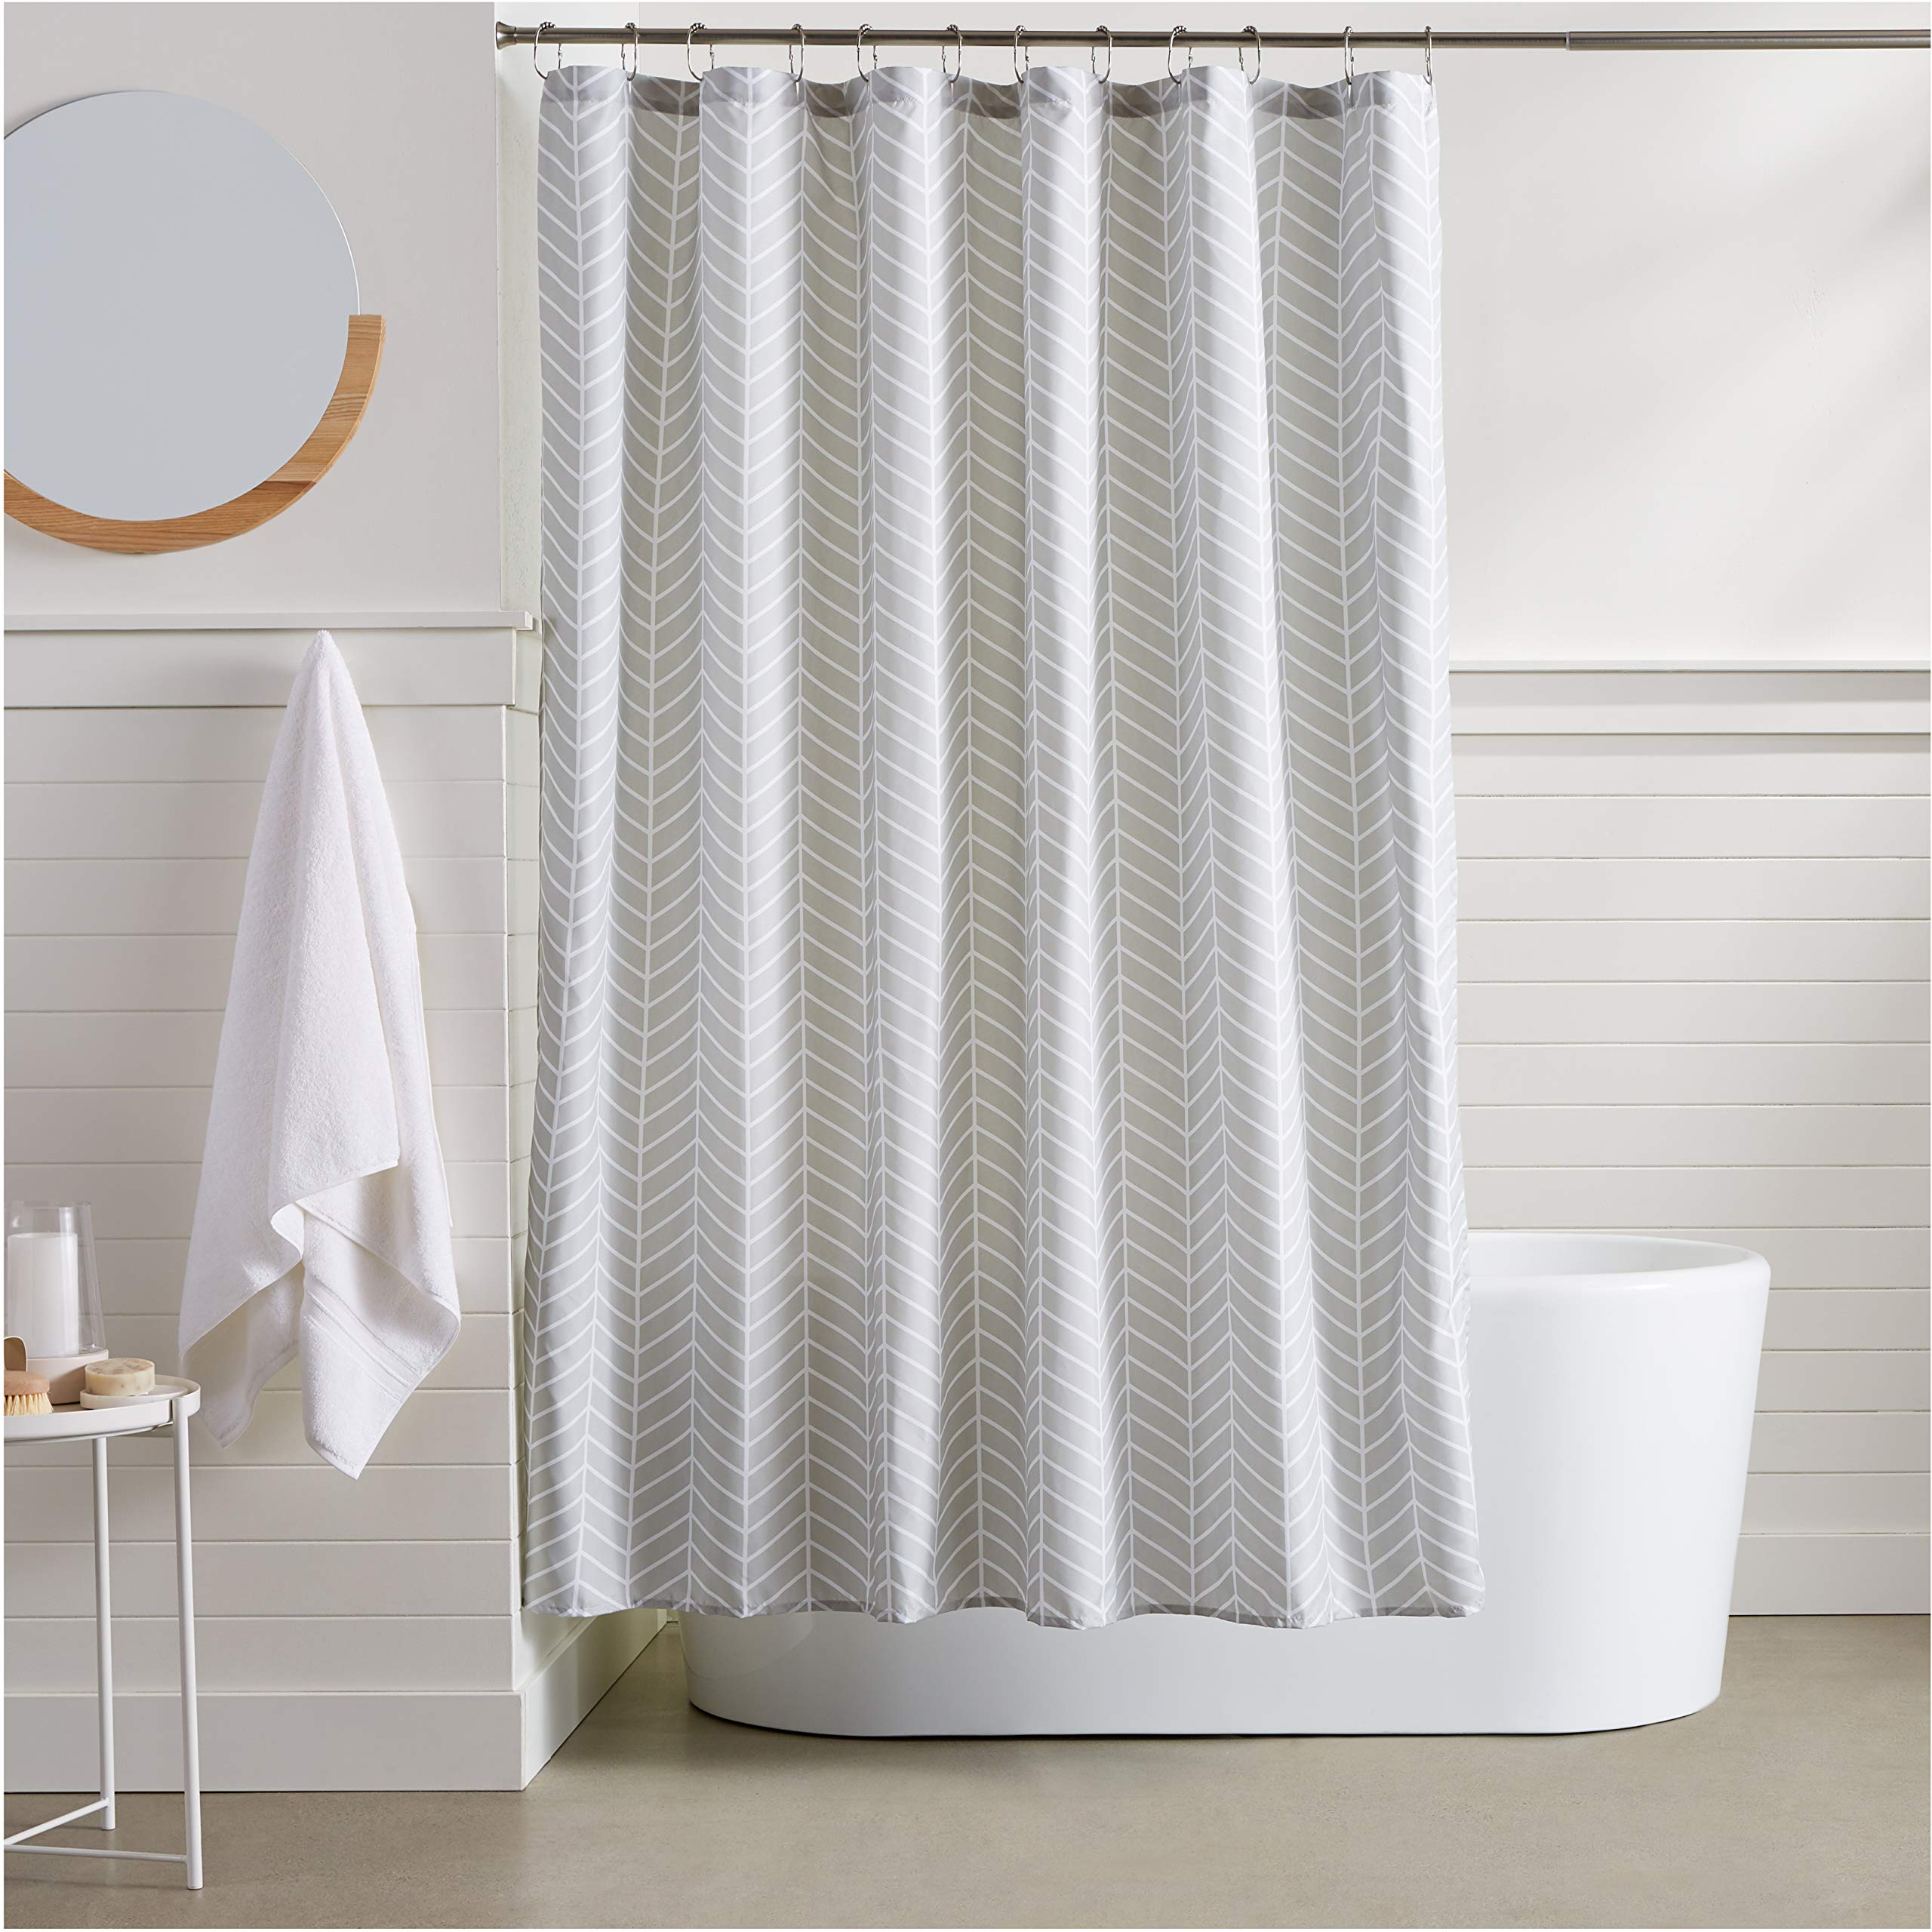 AmazonBasics Grey Herringbone Shower Curtain - 72 Inch by AmazonBasics